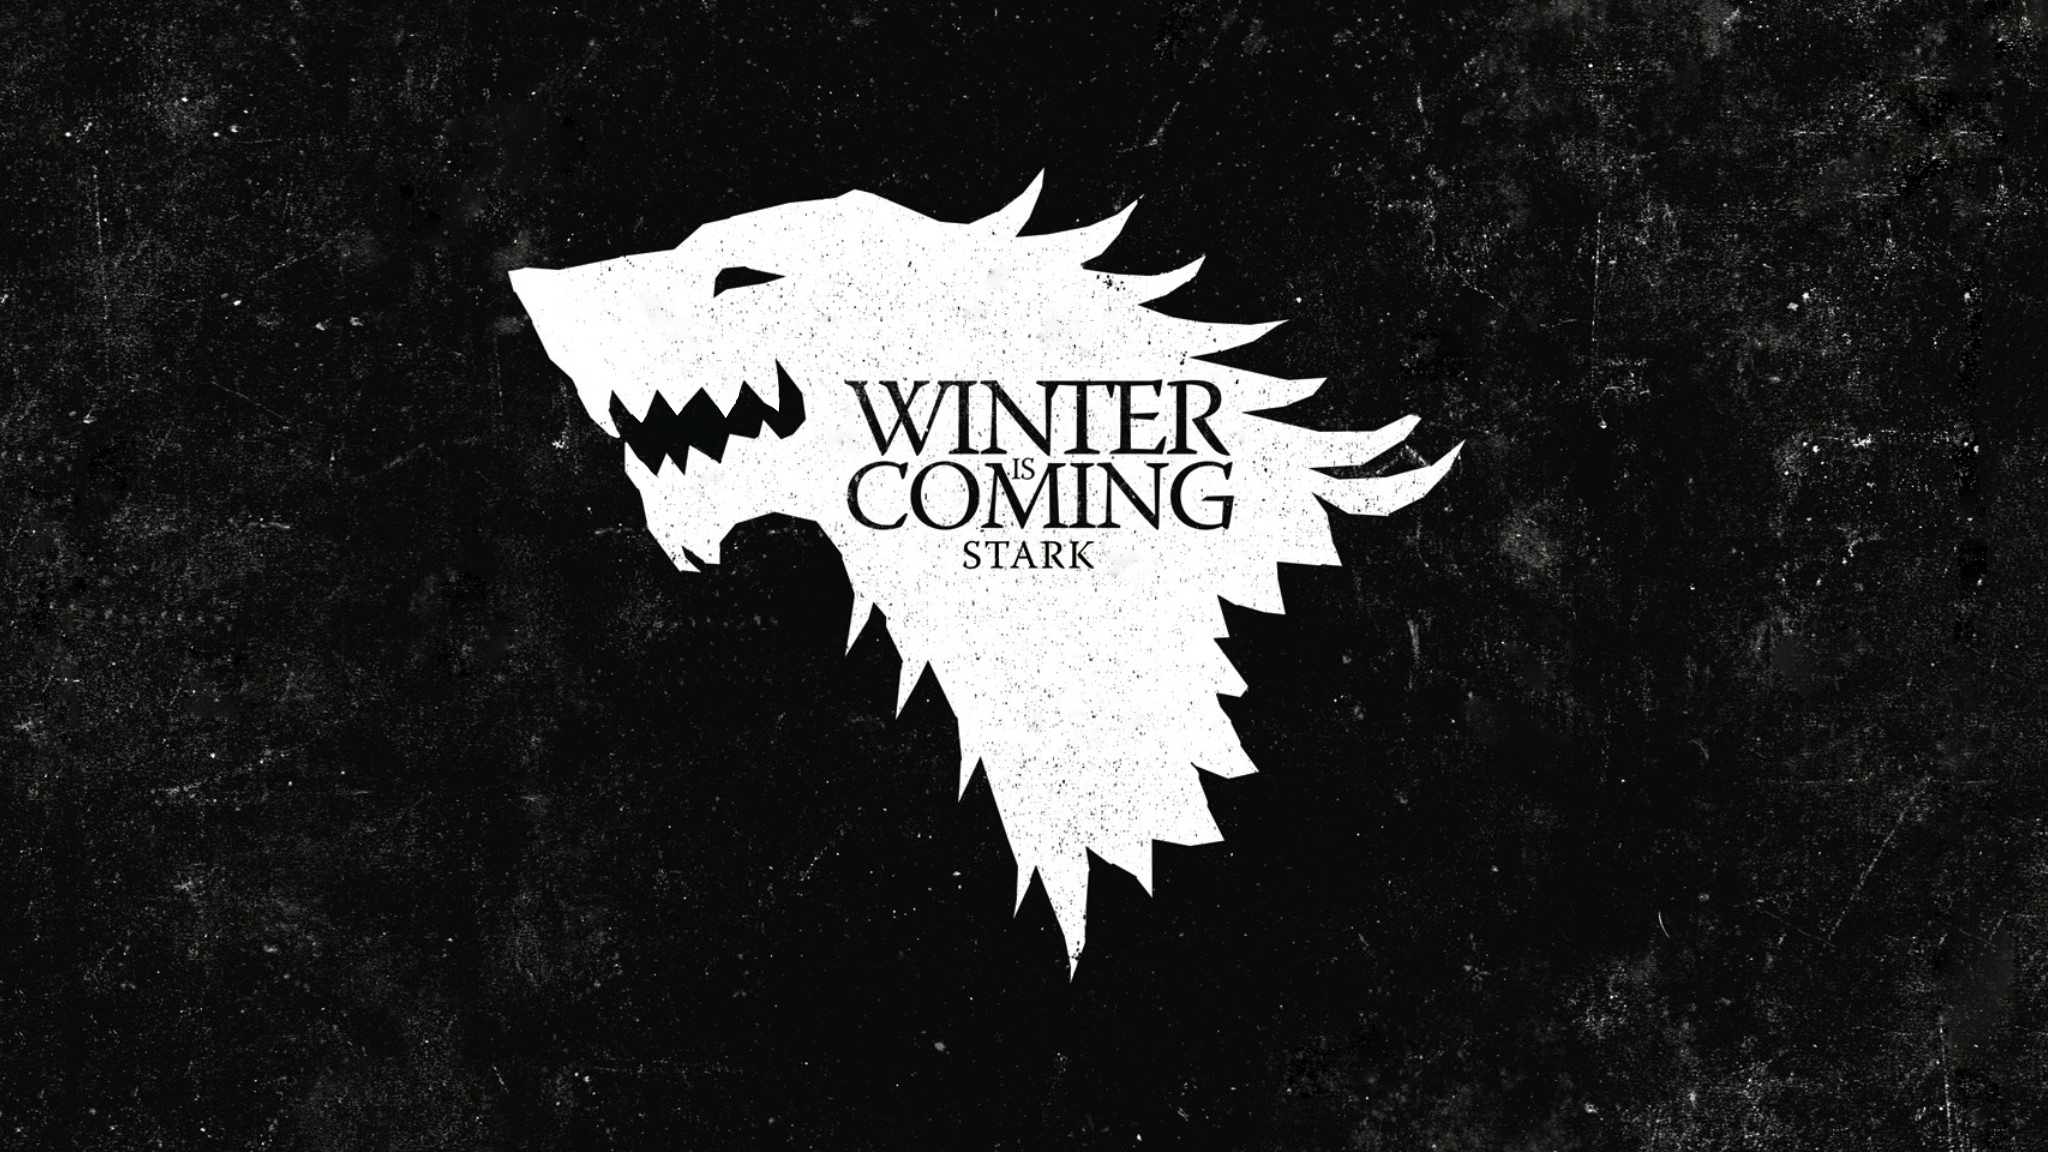 game of thrones, tv series, winter is coming, arms, house stark